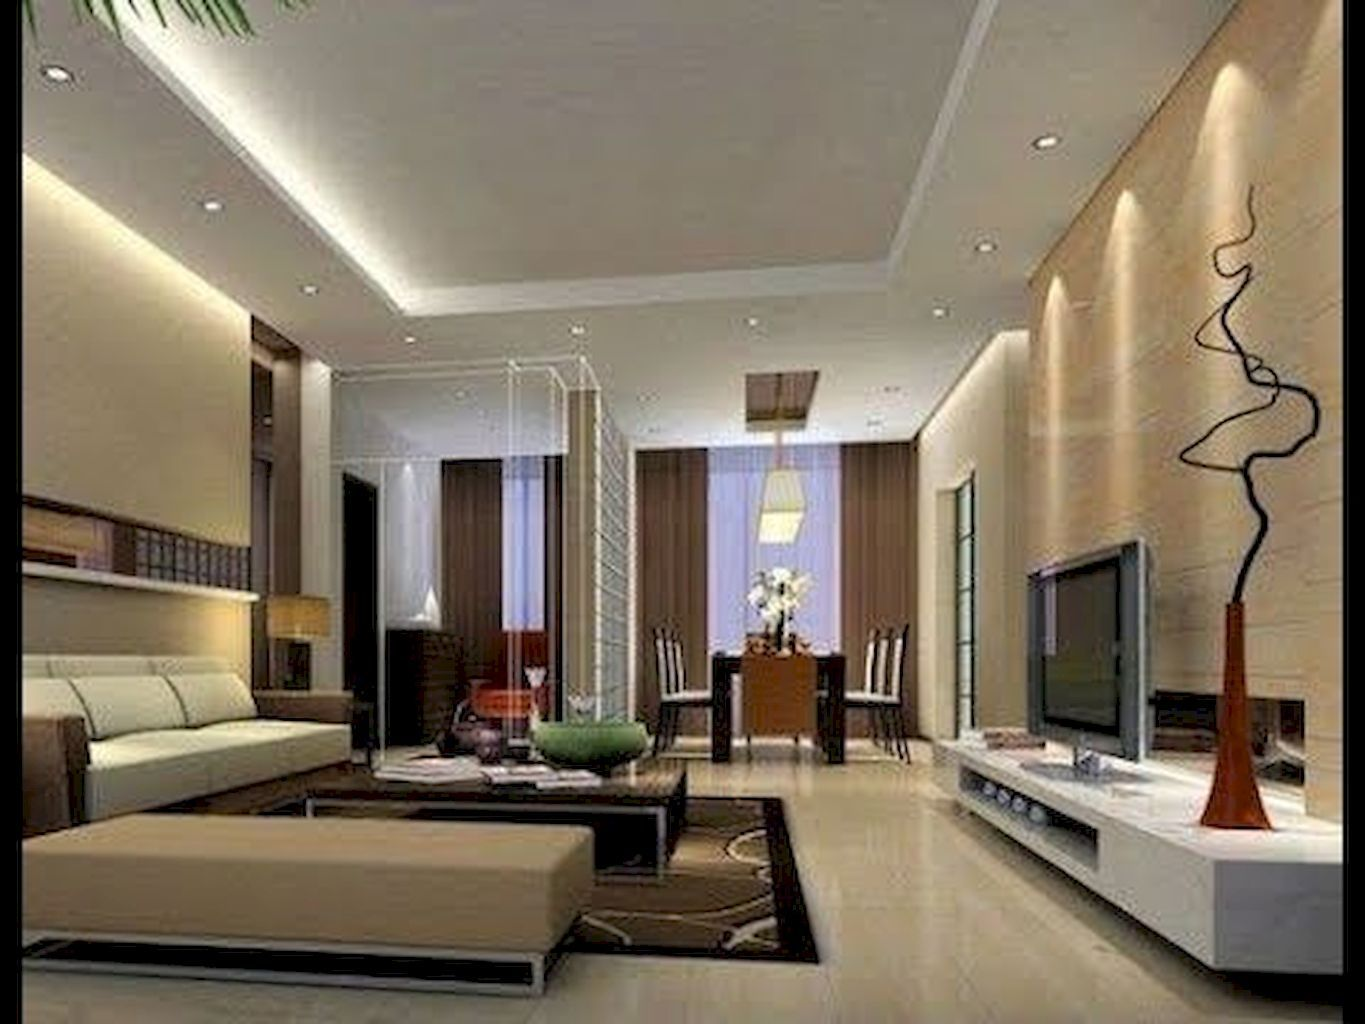 LED Ceiling Light Decoration Ideas For Home Drop ceiling